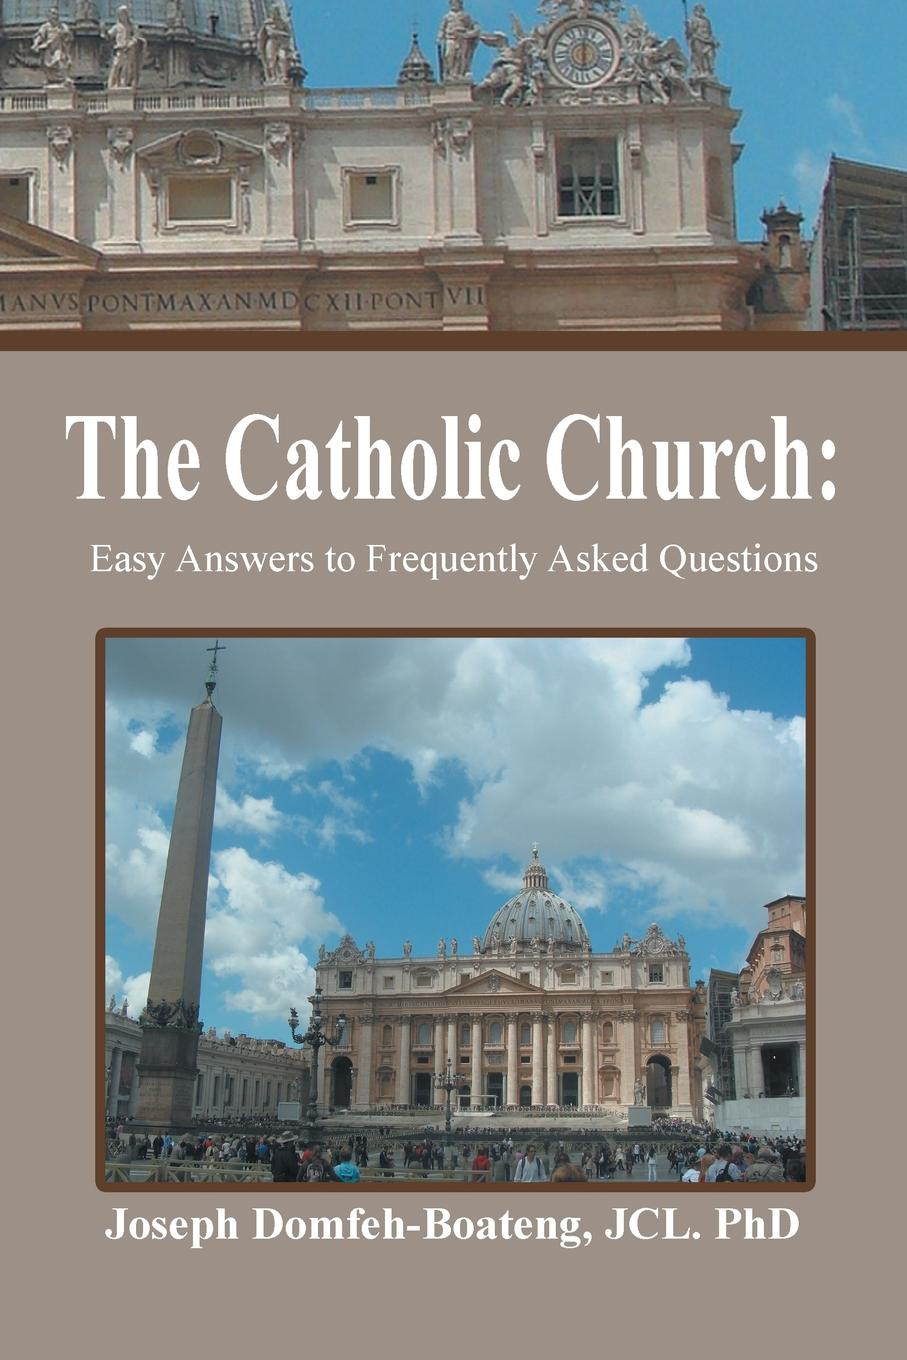 Jcl Phd Joseph Domfeh-Boateng The Catholic Church. Easy Answers to Frequently Asked Questions brian kettell frequently asked questions in islamic finance